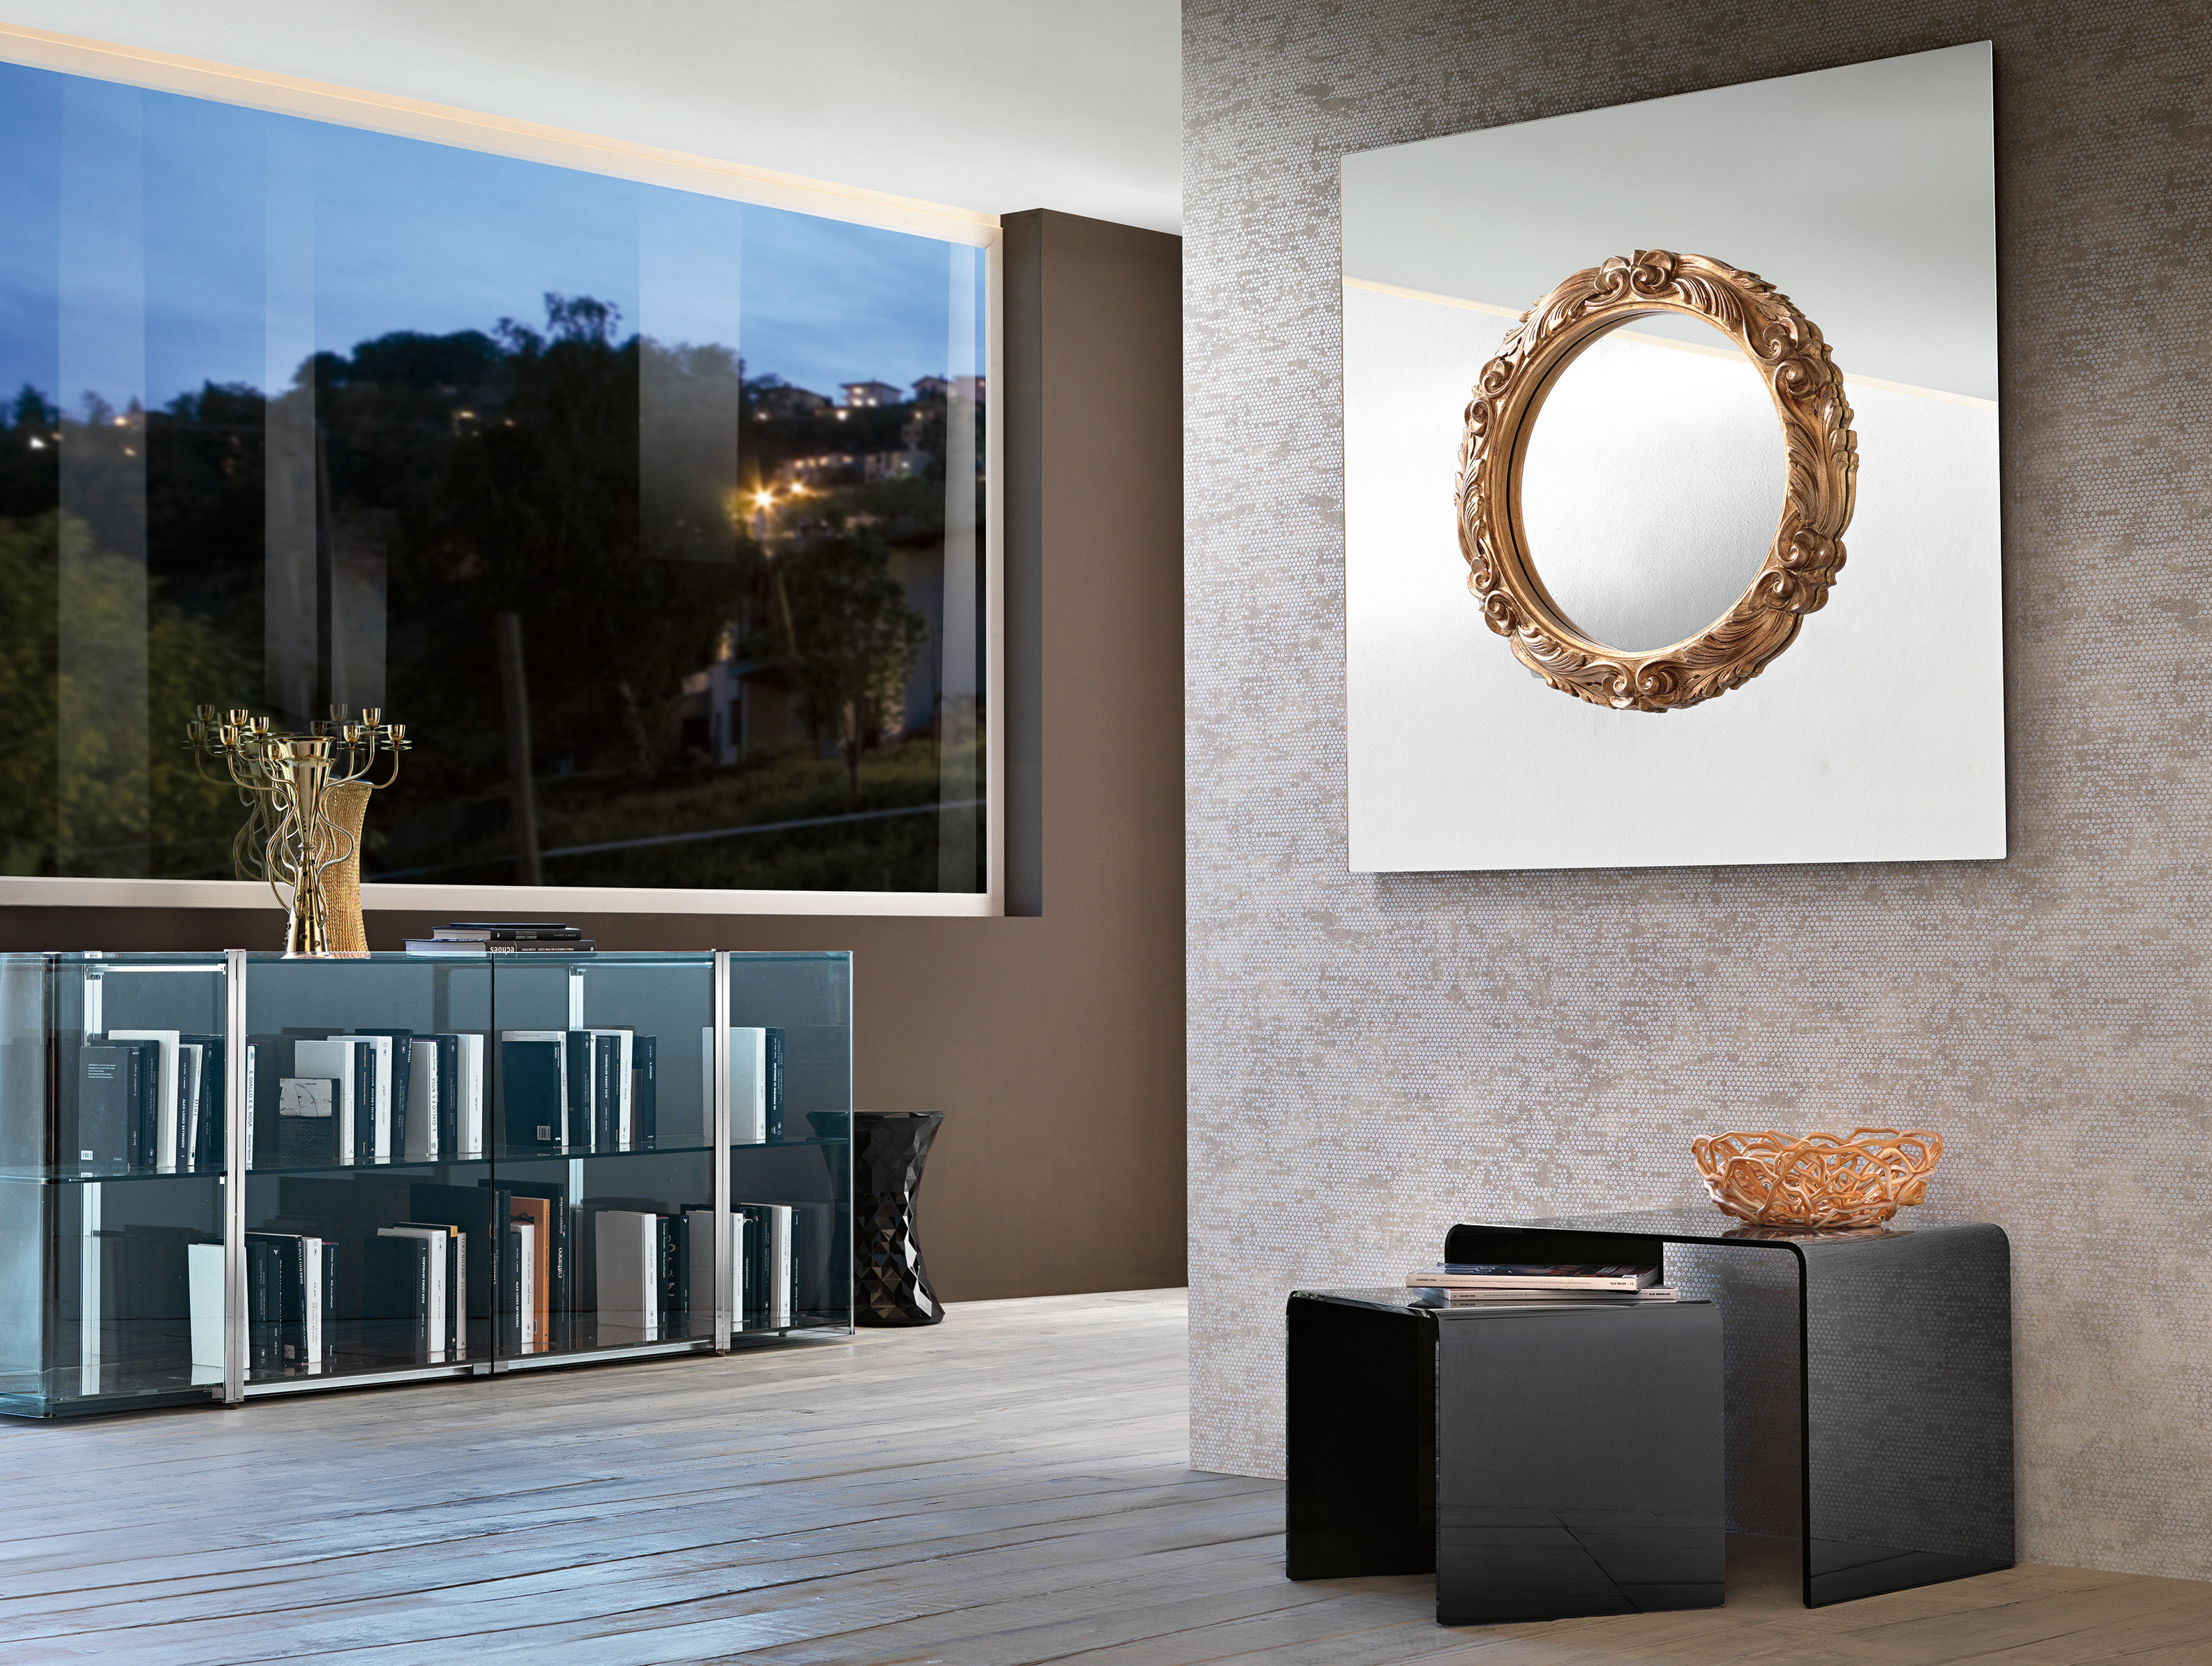 miroir mural ritratto 110 x 110 cm miroir cadre rond. Black Bedroom Furniture Sets. Home Design Ideas